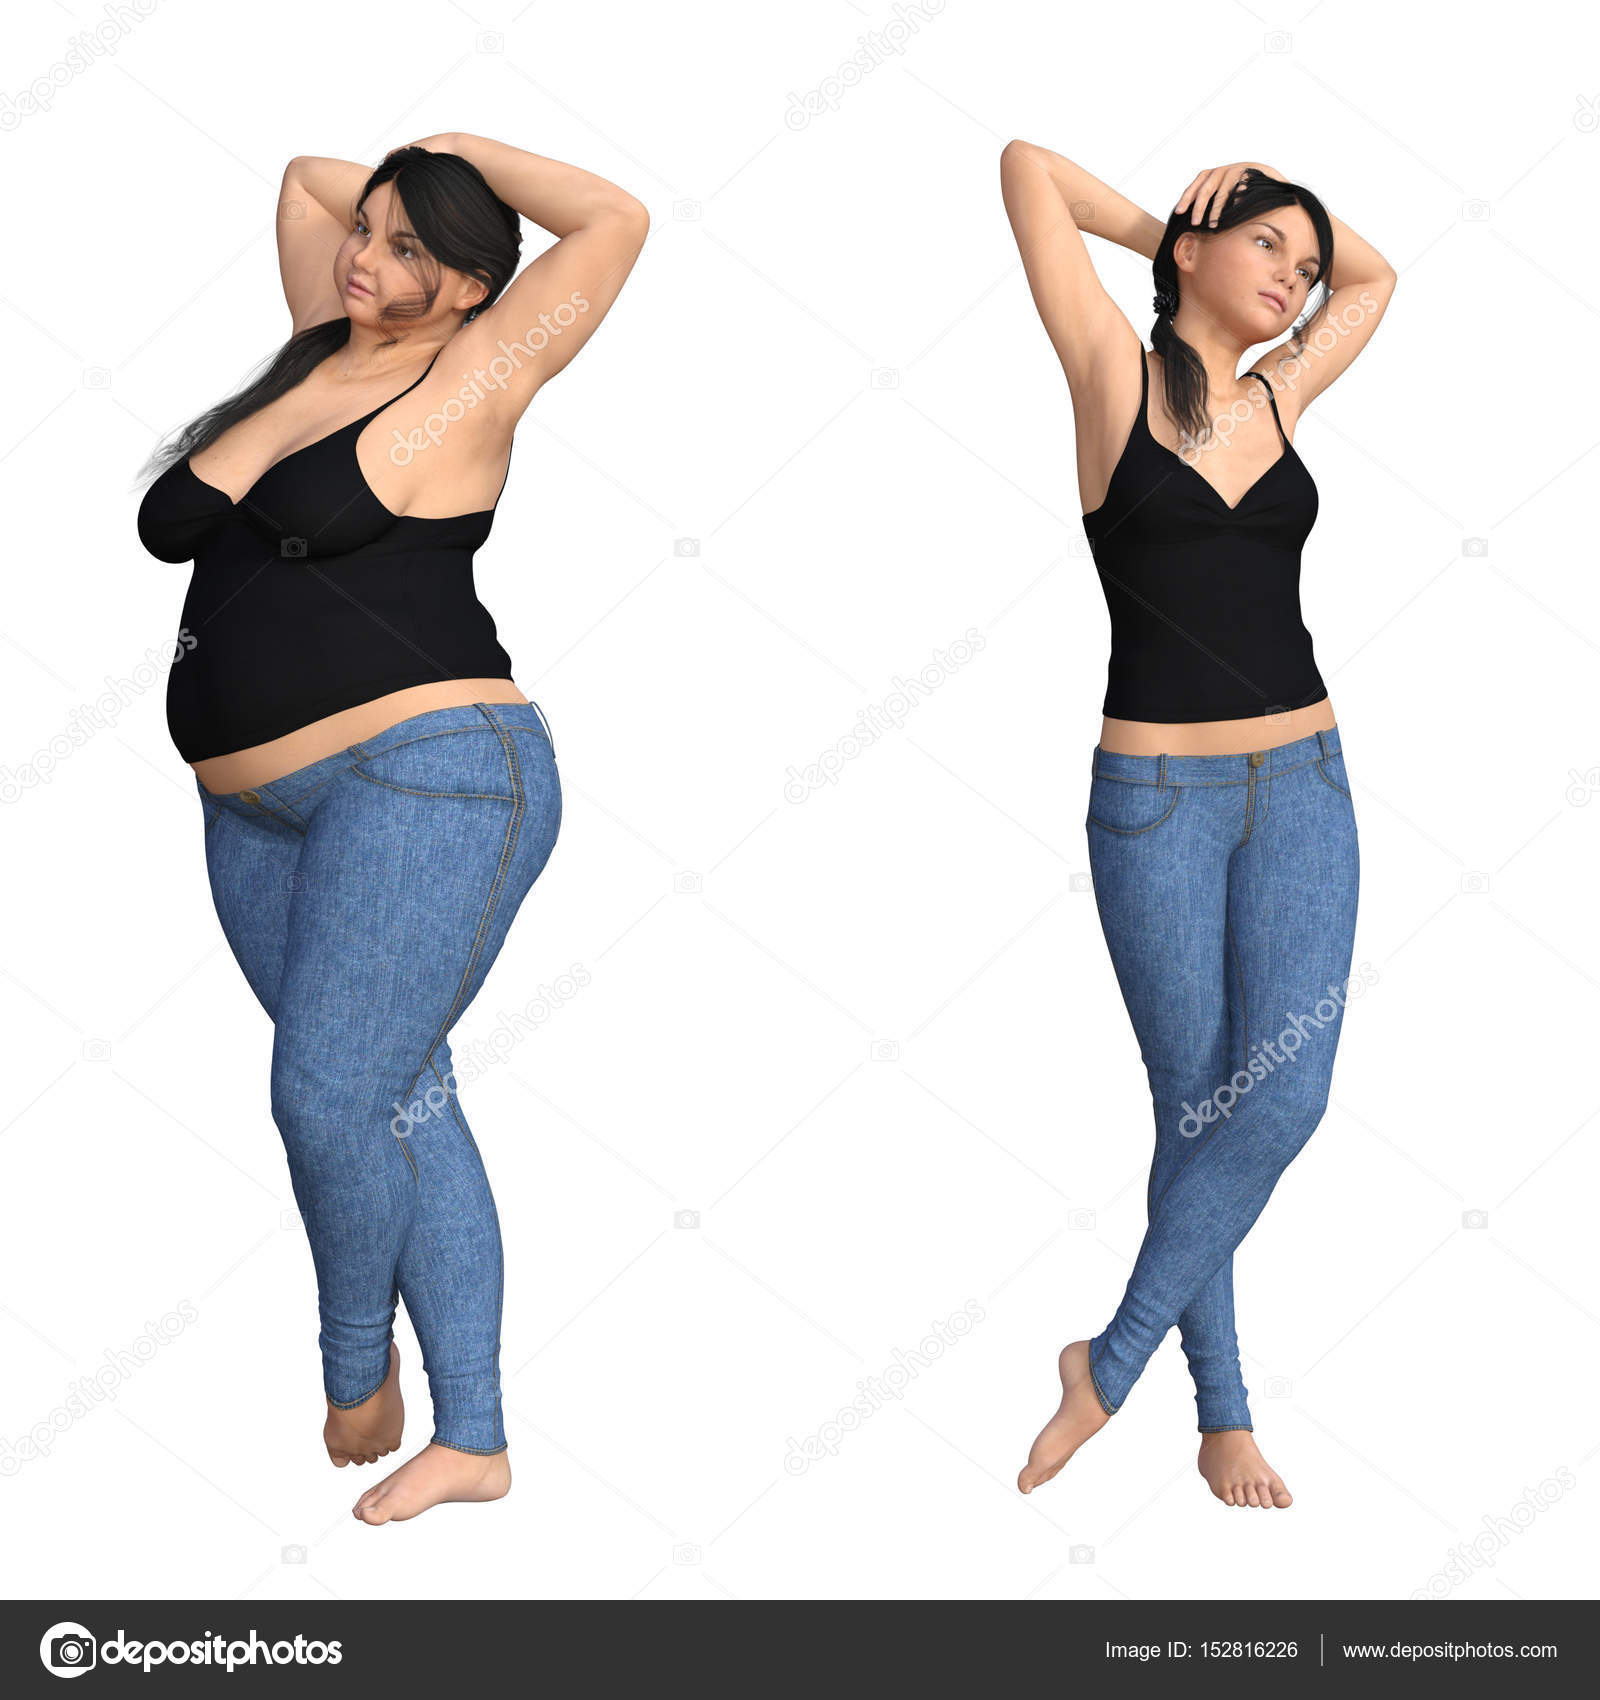 Fat Overweight Obese Female Vs Slim Fit Healthyt